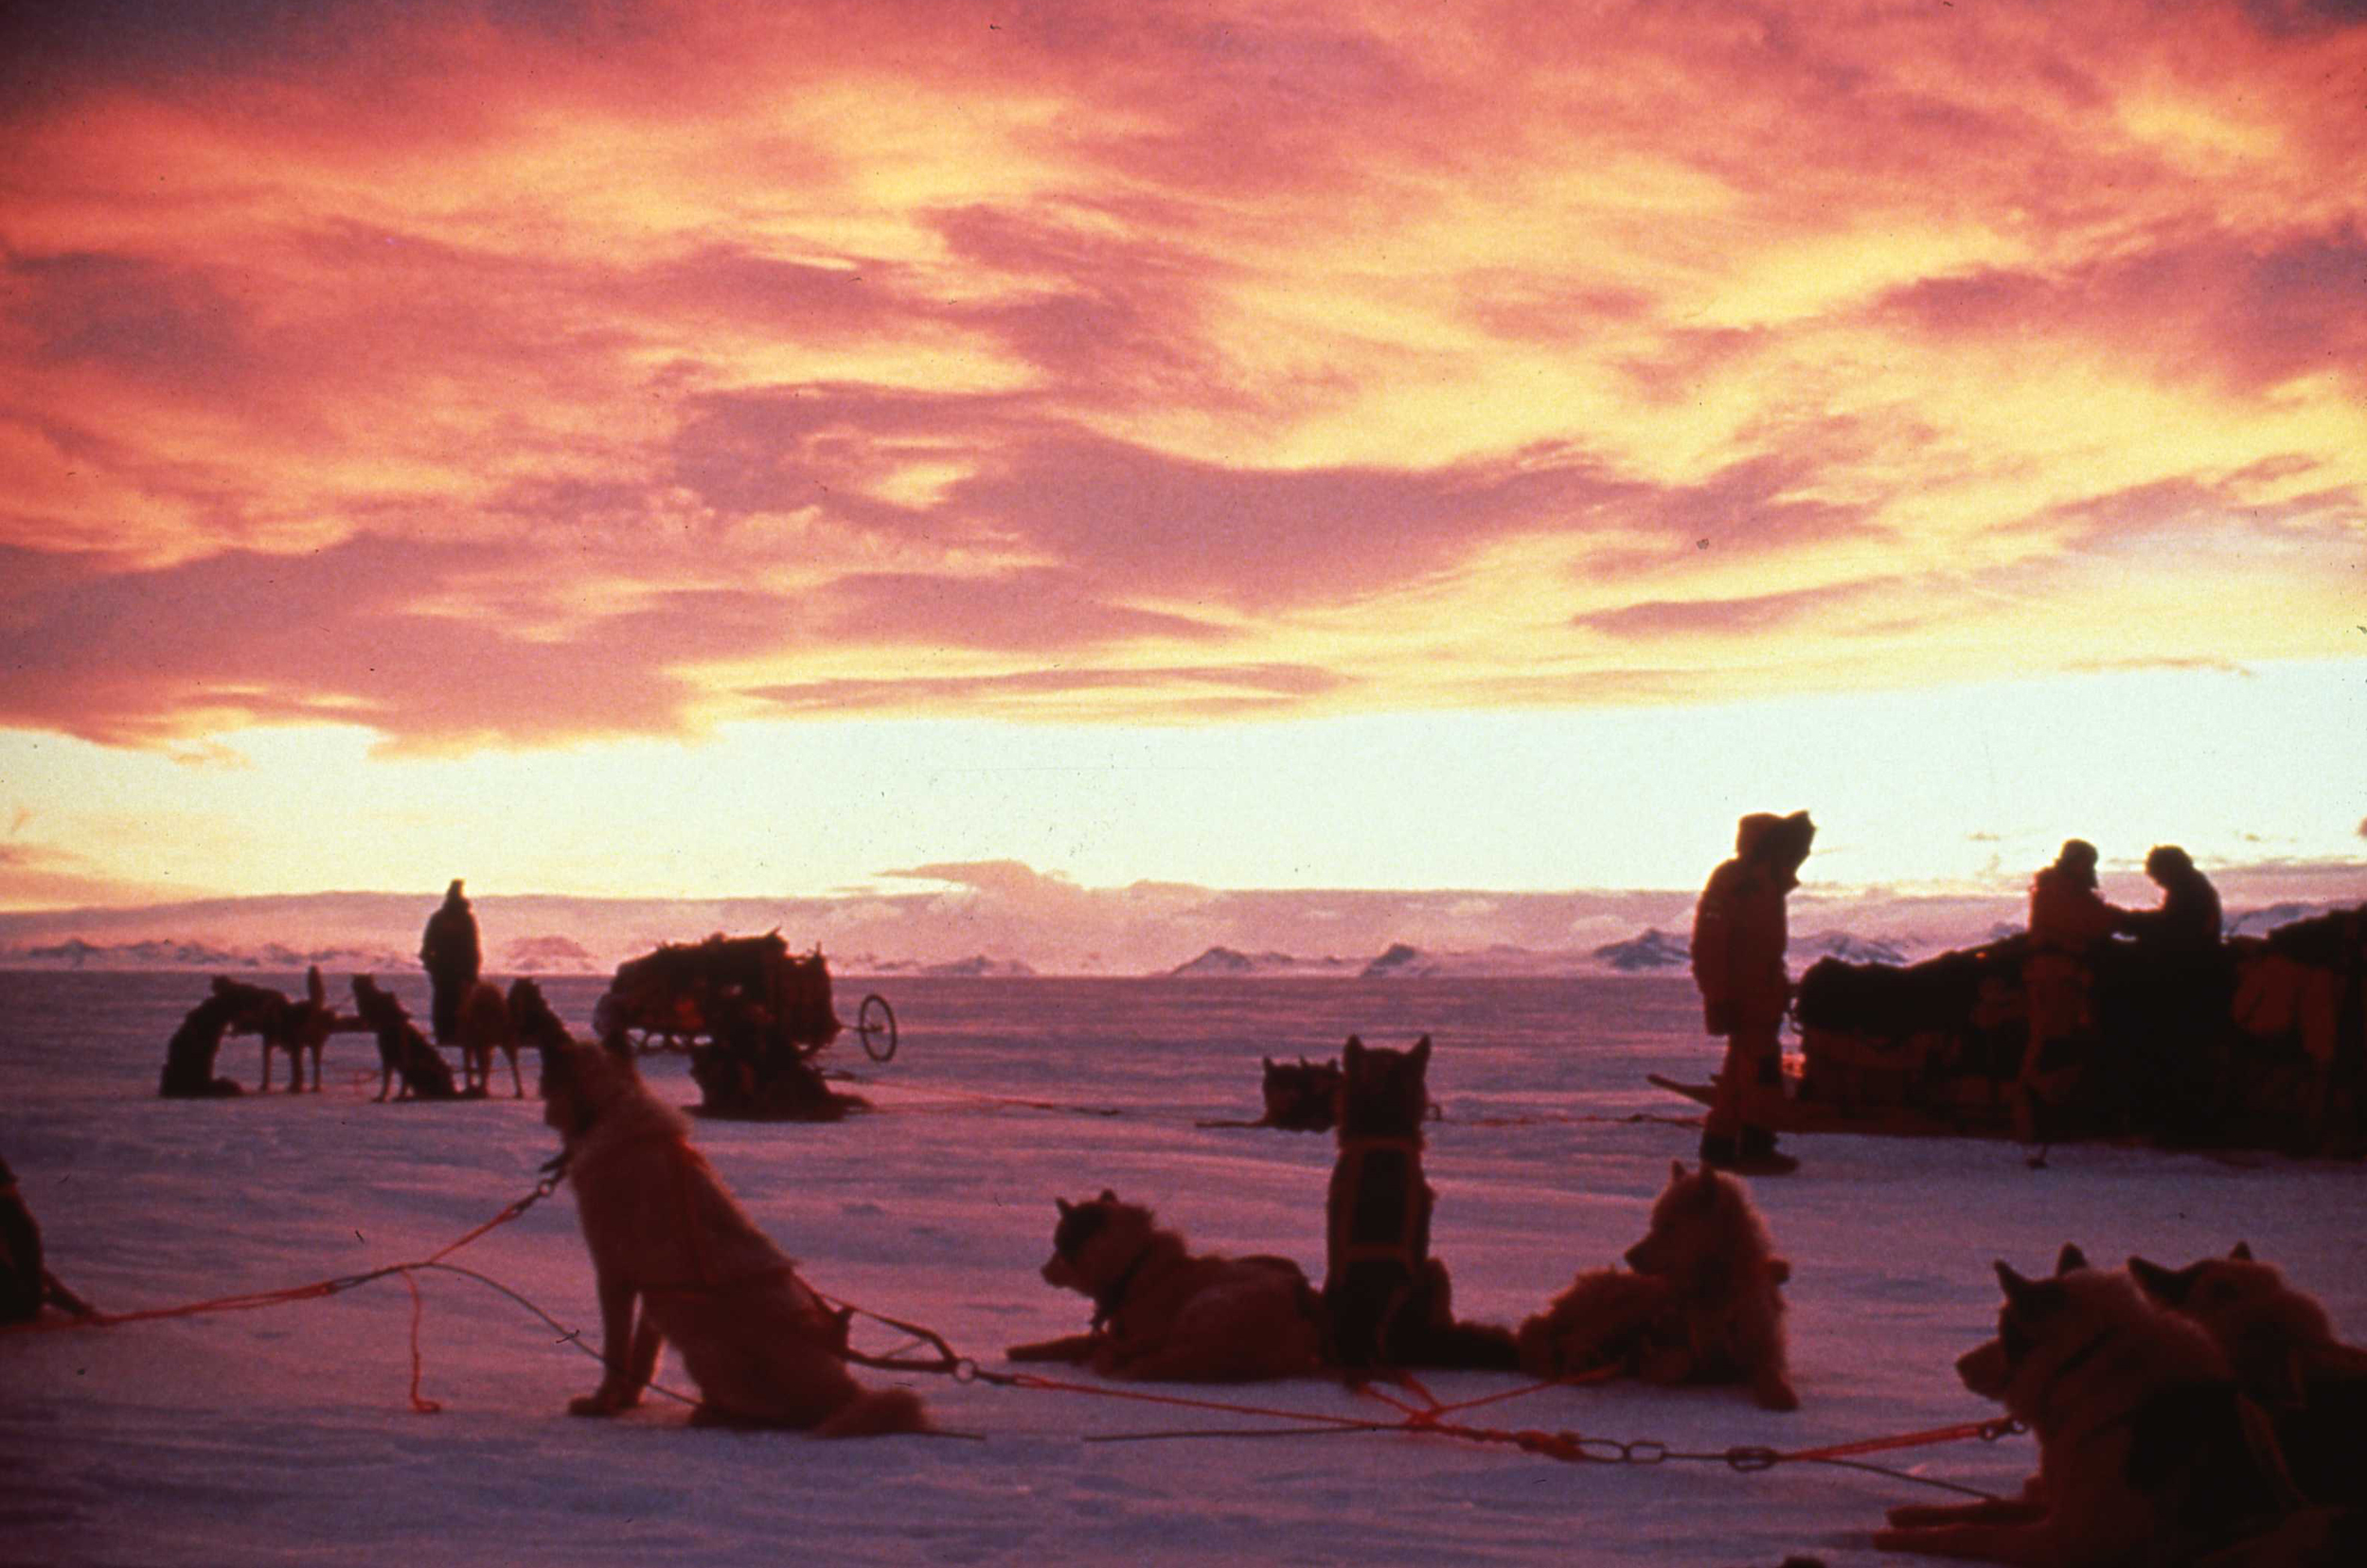 Because the expedition was expected to take seven months, the team had to begin and finish in Antarctic winter, traveling in a perpetual sunset. ©Will Steger by Rick Ridgeway